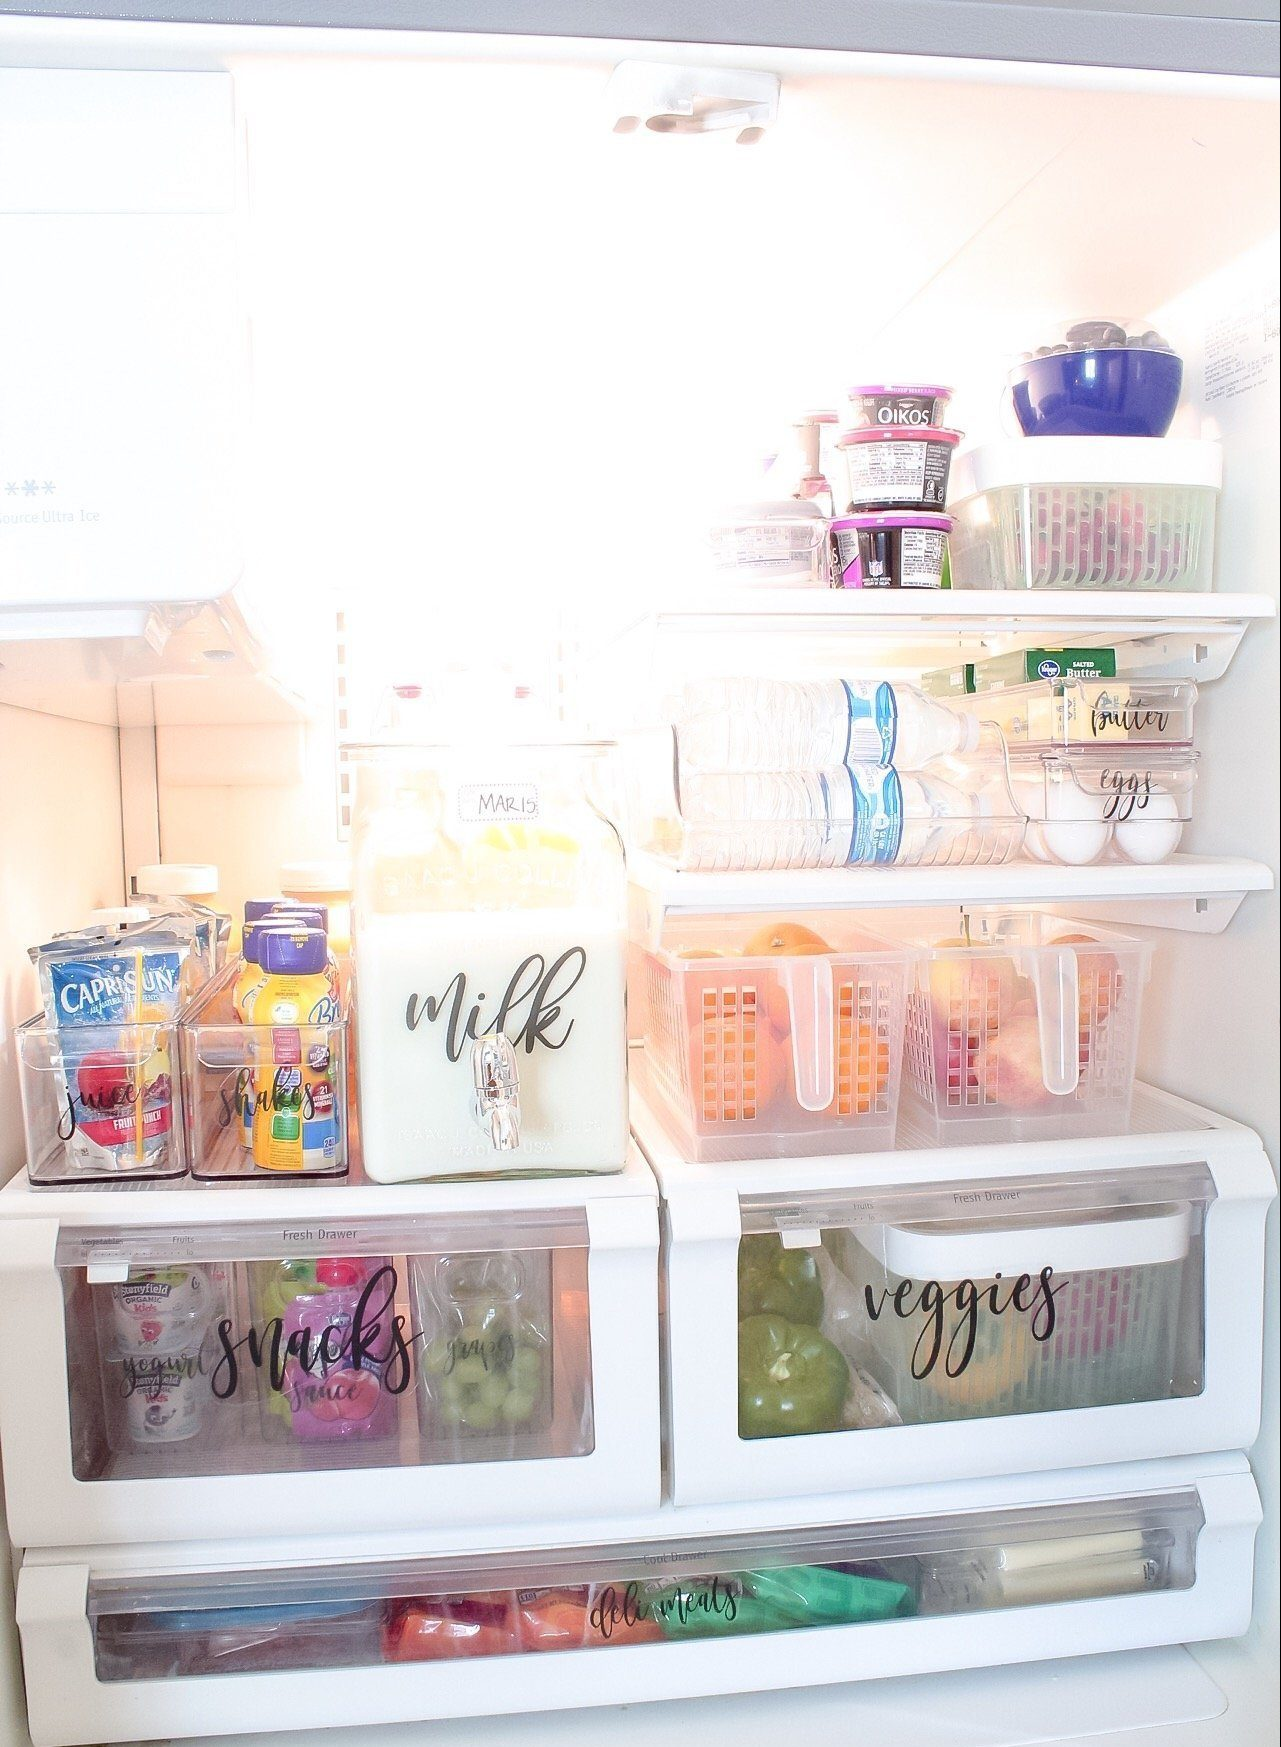 My completely organized fridge, with veggies and fruit in bins, milk in a new container, etc.